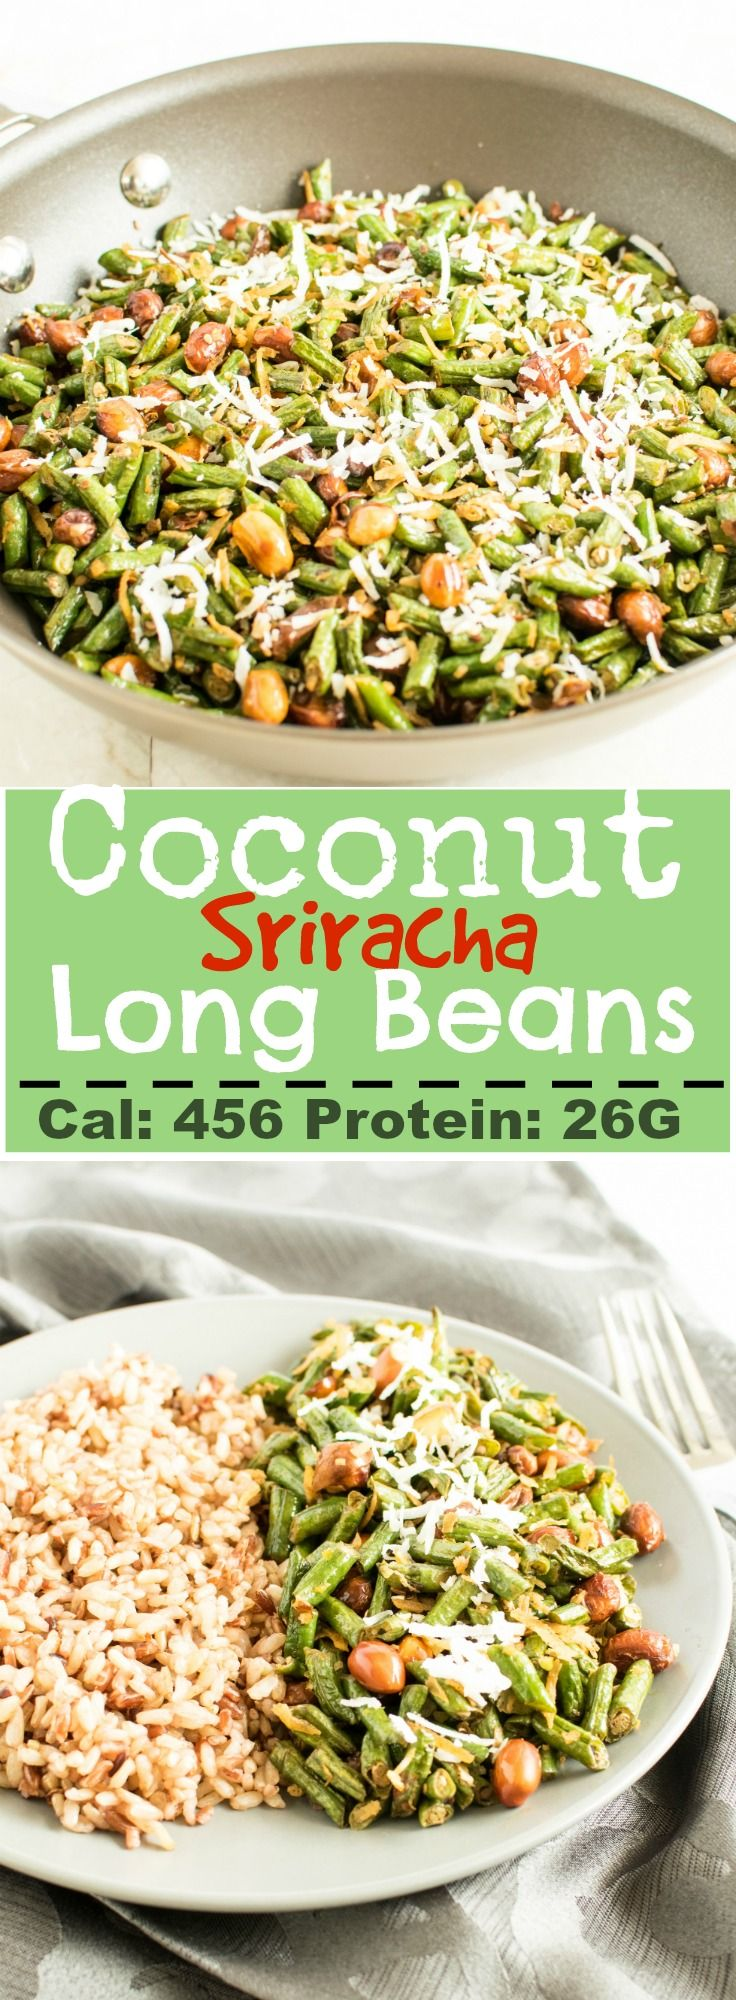 Coconut Sriracha Long Beans   Healthy, protein rich vegan and gluten free that can be enjoyed with rice or as a salad   kiipfit.com